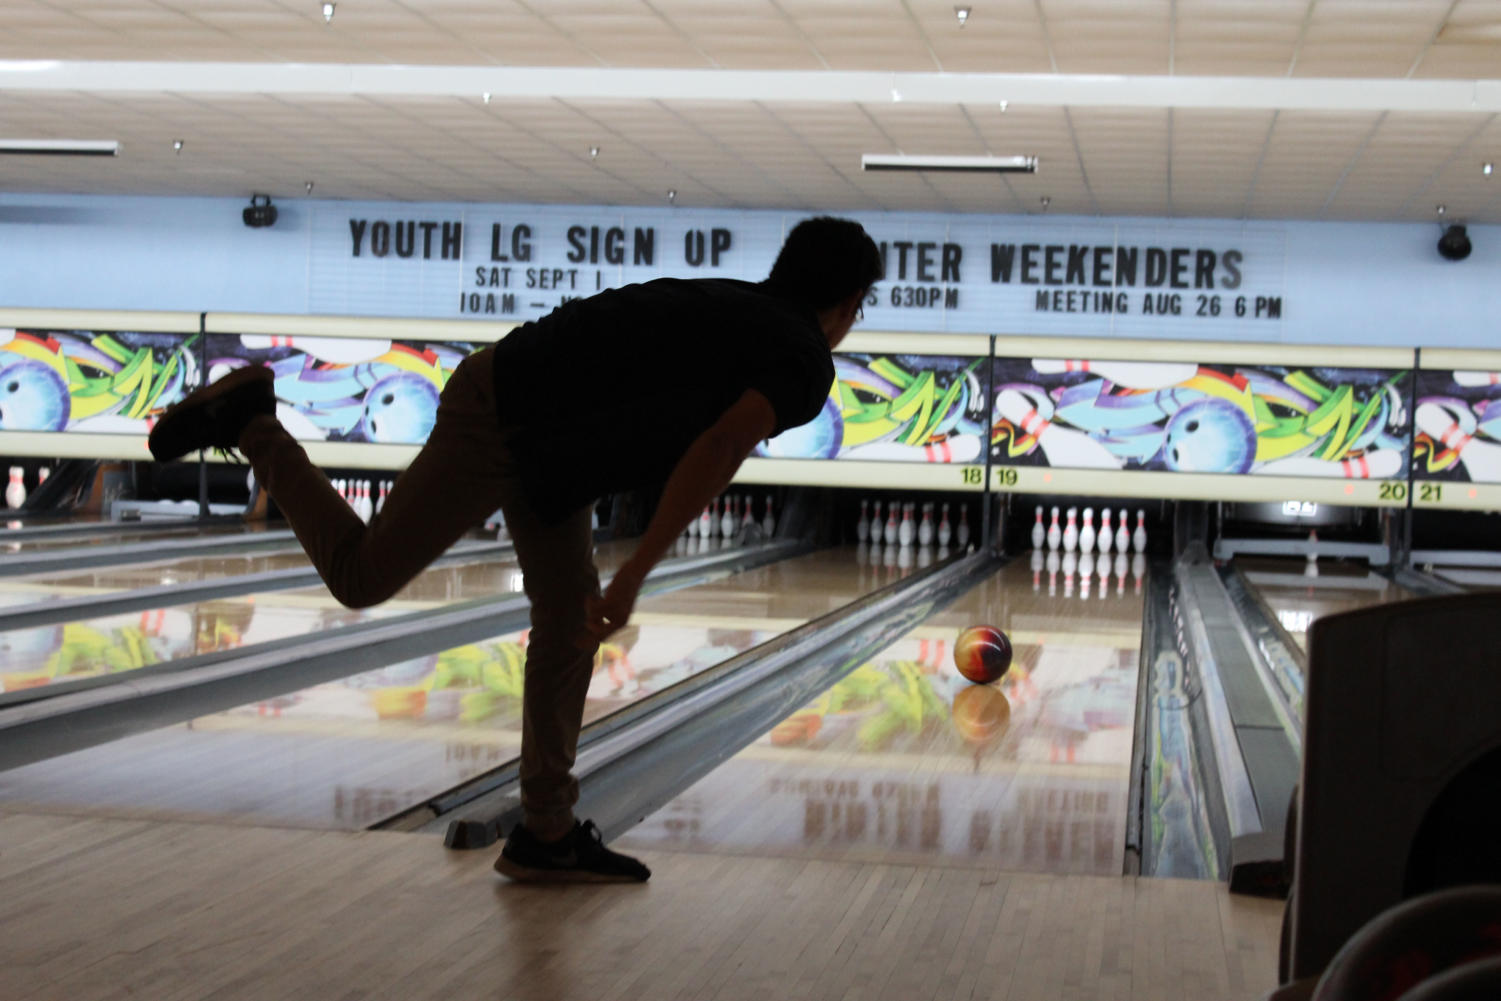 Senior+Austin+Ray+shows+off+his+proper+bowling+technique+at+the+bowling+tournament+on+Monday%2C+August+27+at+the+Oviedo+Lanes.+For+the+first+round%2C+Brantley+was+in+a+lane+rights+next+to+Lyman.